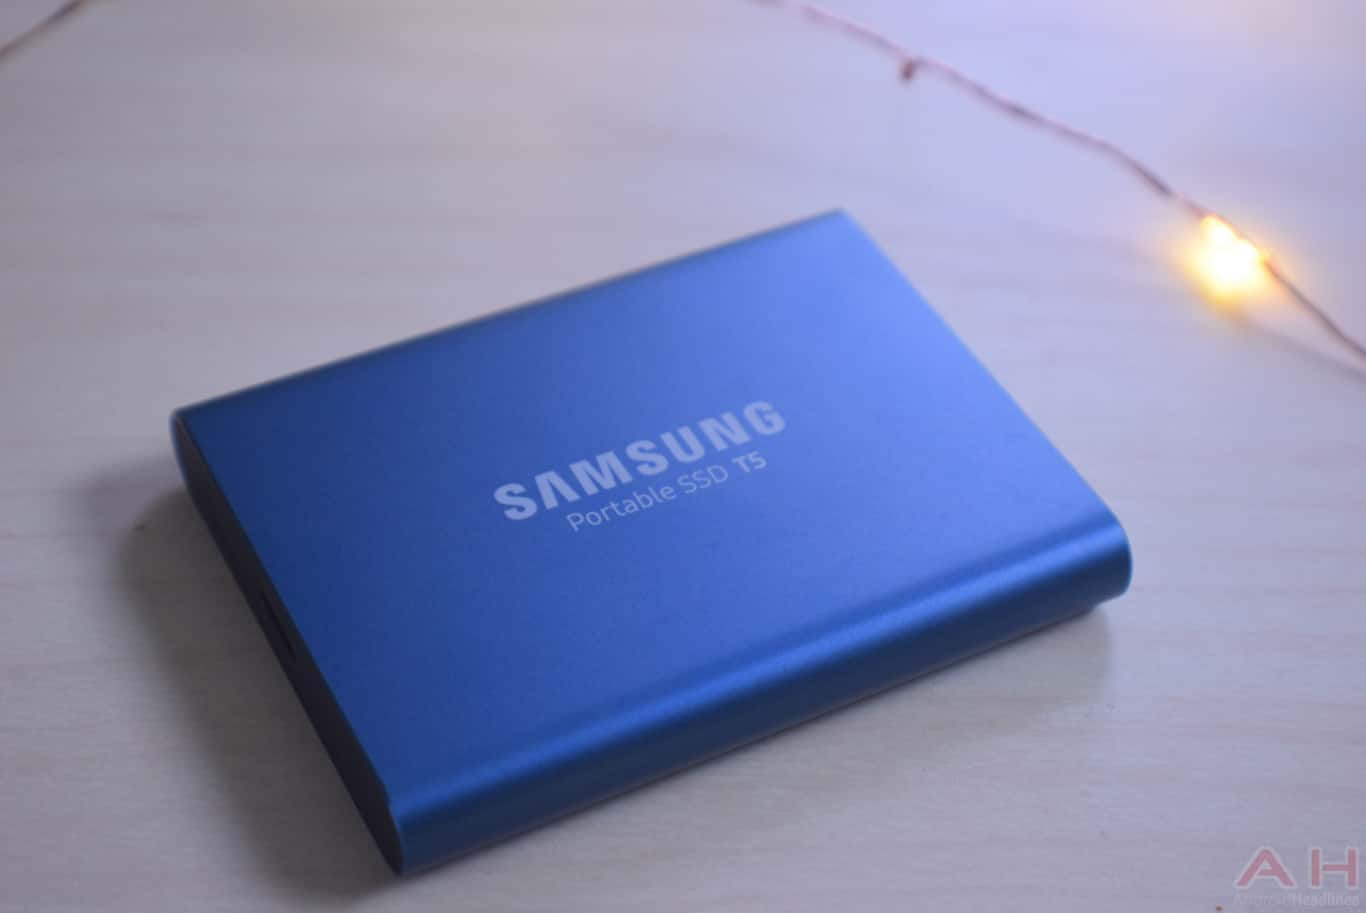 Samsung T5 SSD Review AM AH 0027